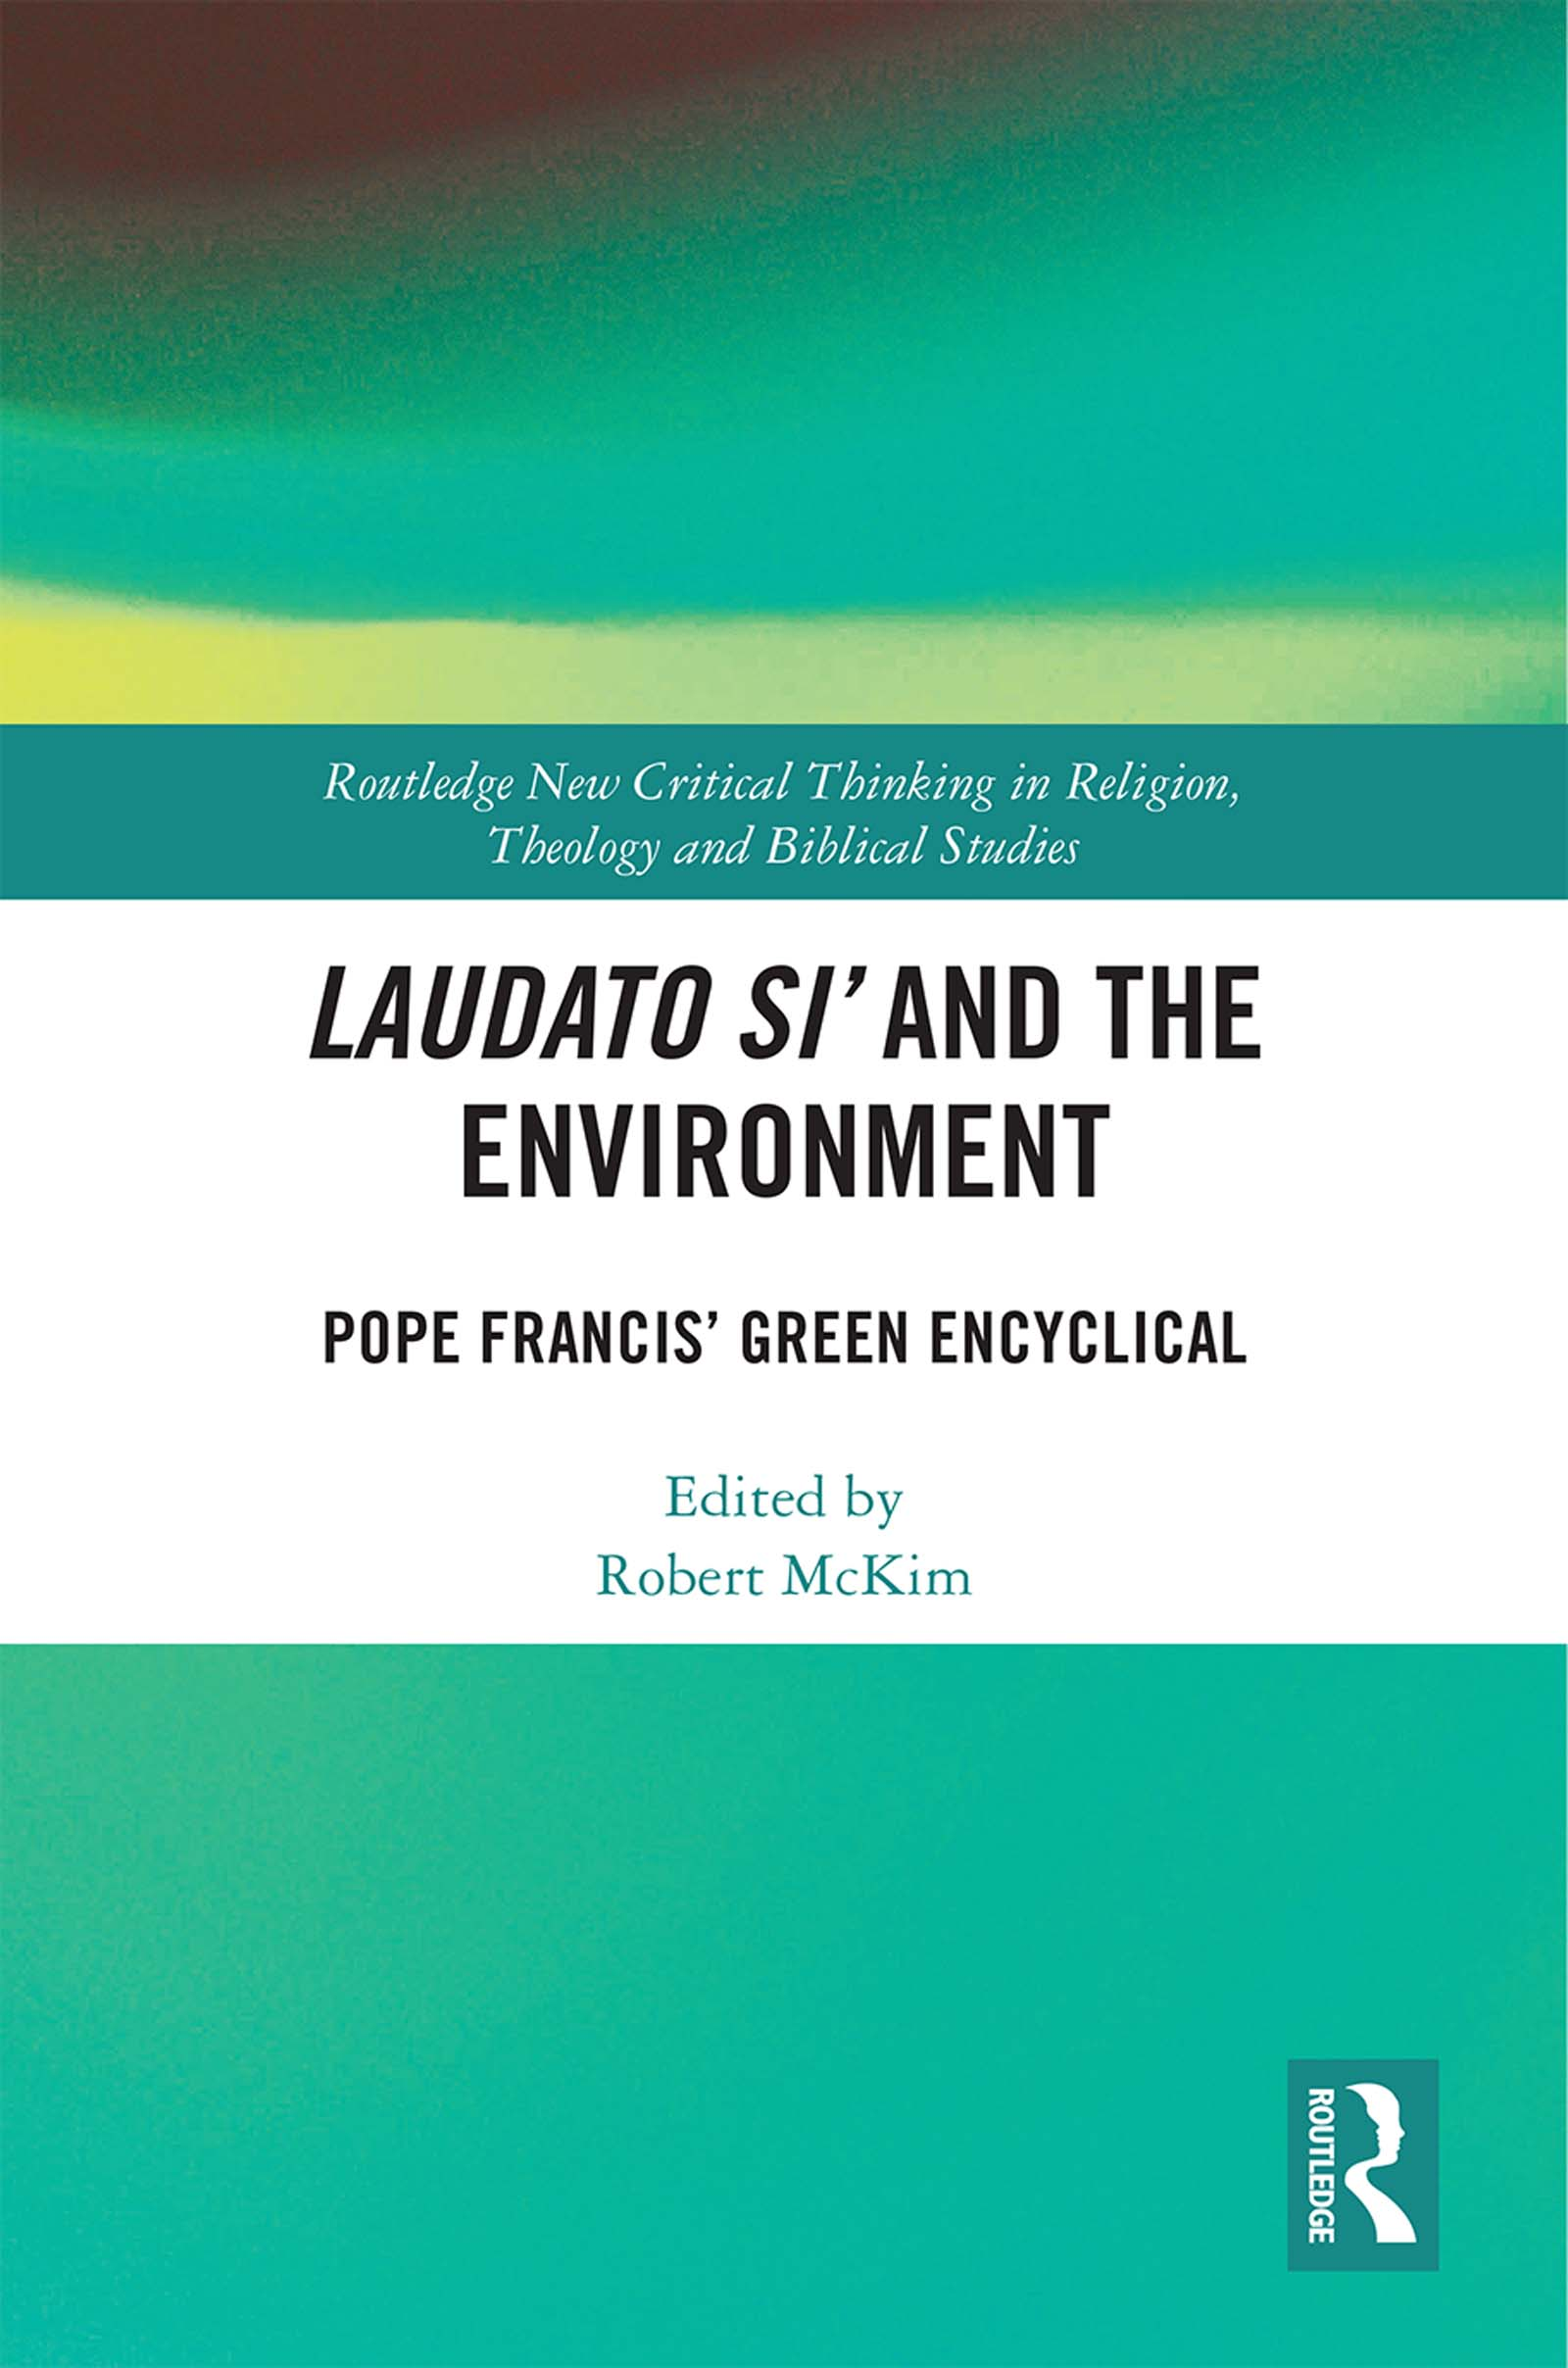 Laudato Si' and the Environment: Pope Francis' Green Encyclical book cover